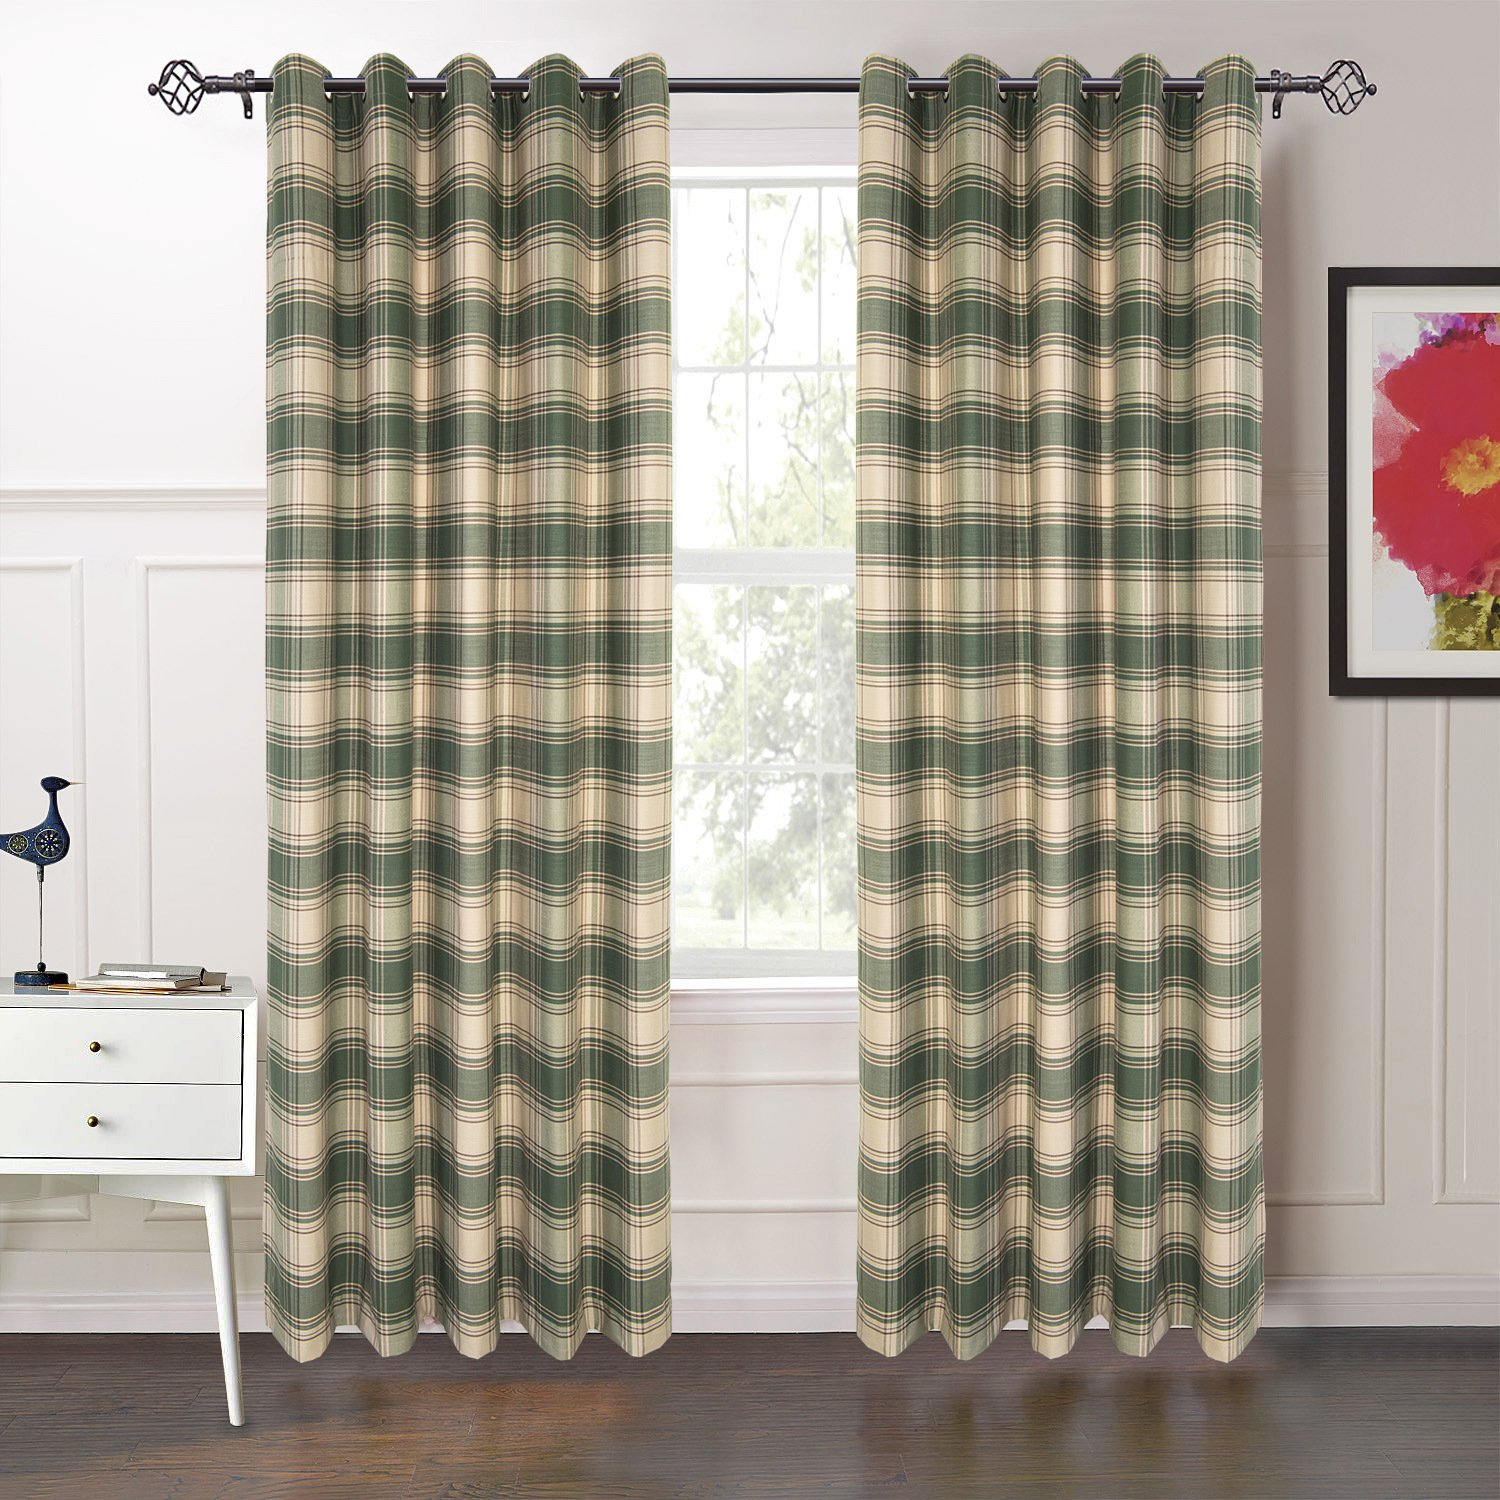 "IYUEGO 50"" W x 63"" L (One Panel), Classic Country Plaid Jacquard Grommet Top Curtains Draperies With Multi Size Custom"